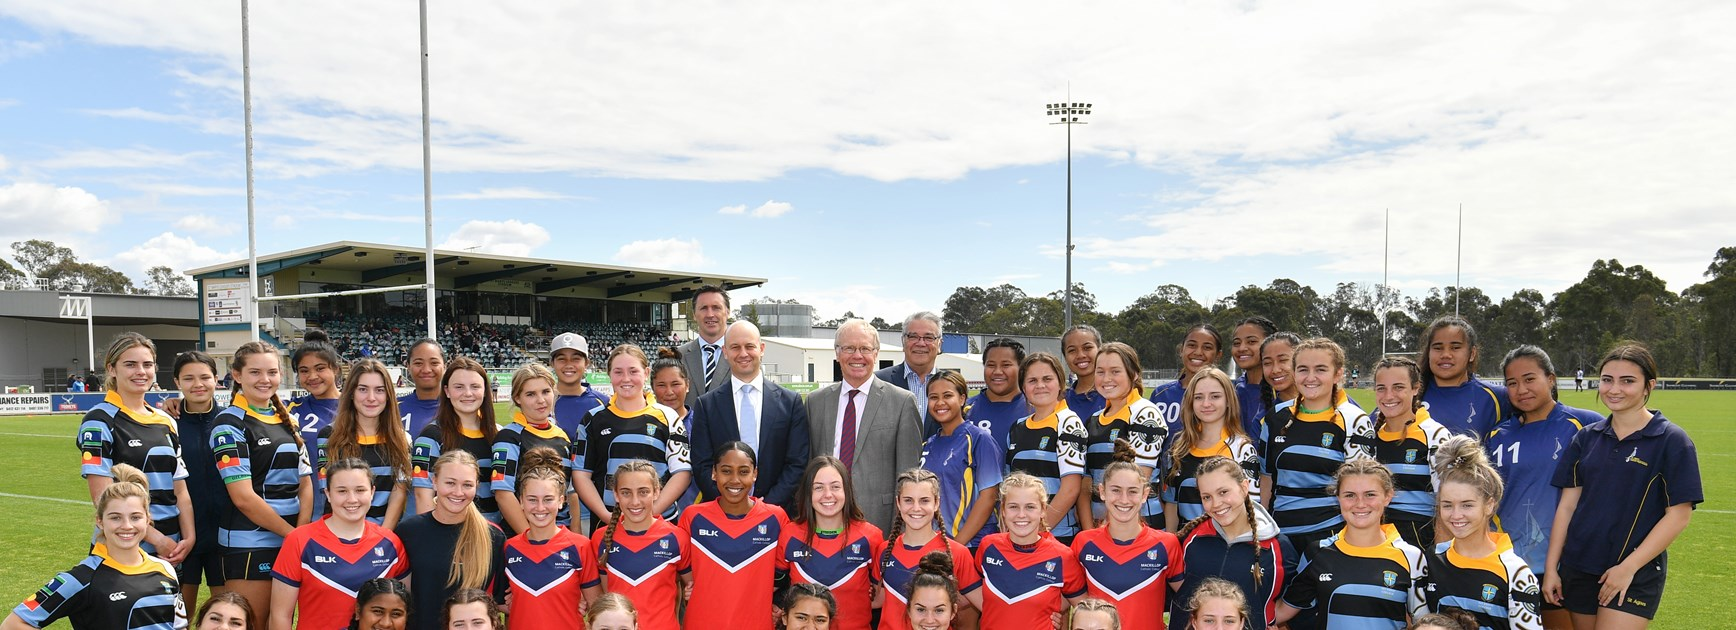 More Than 100,000 Playing Rugby League in NSW